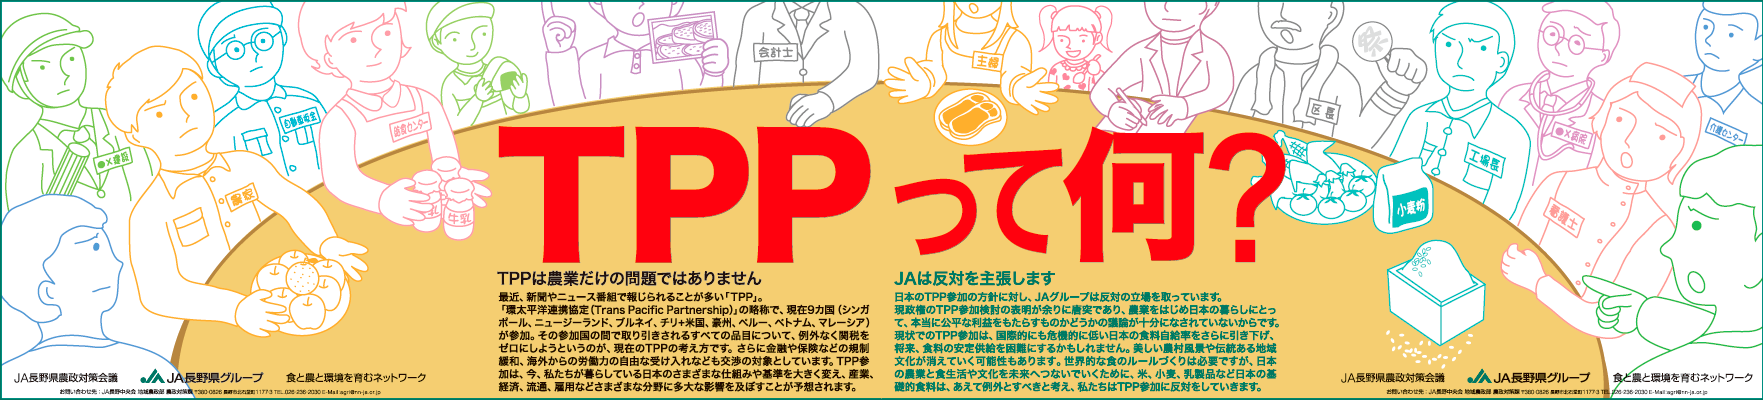 20111201-seed-TPP5d5d.png